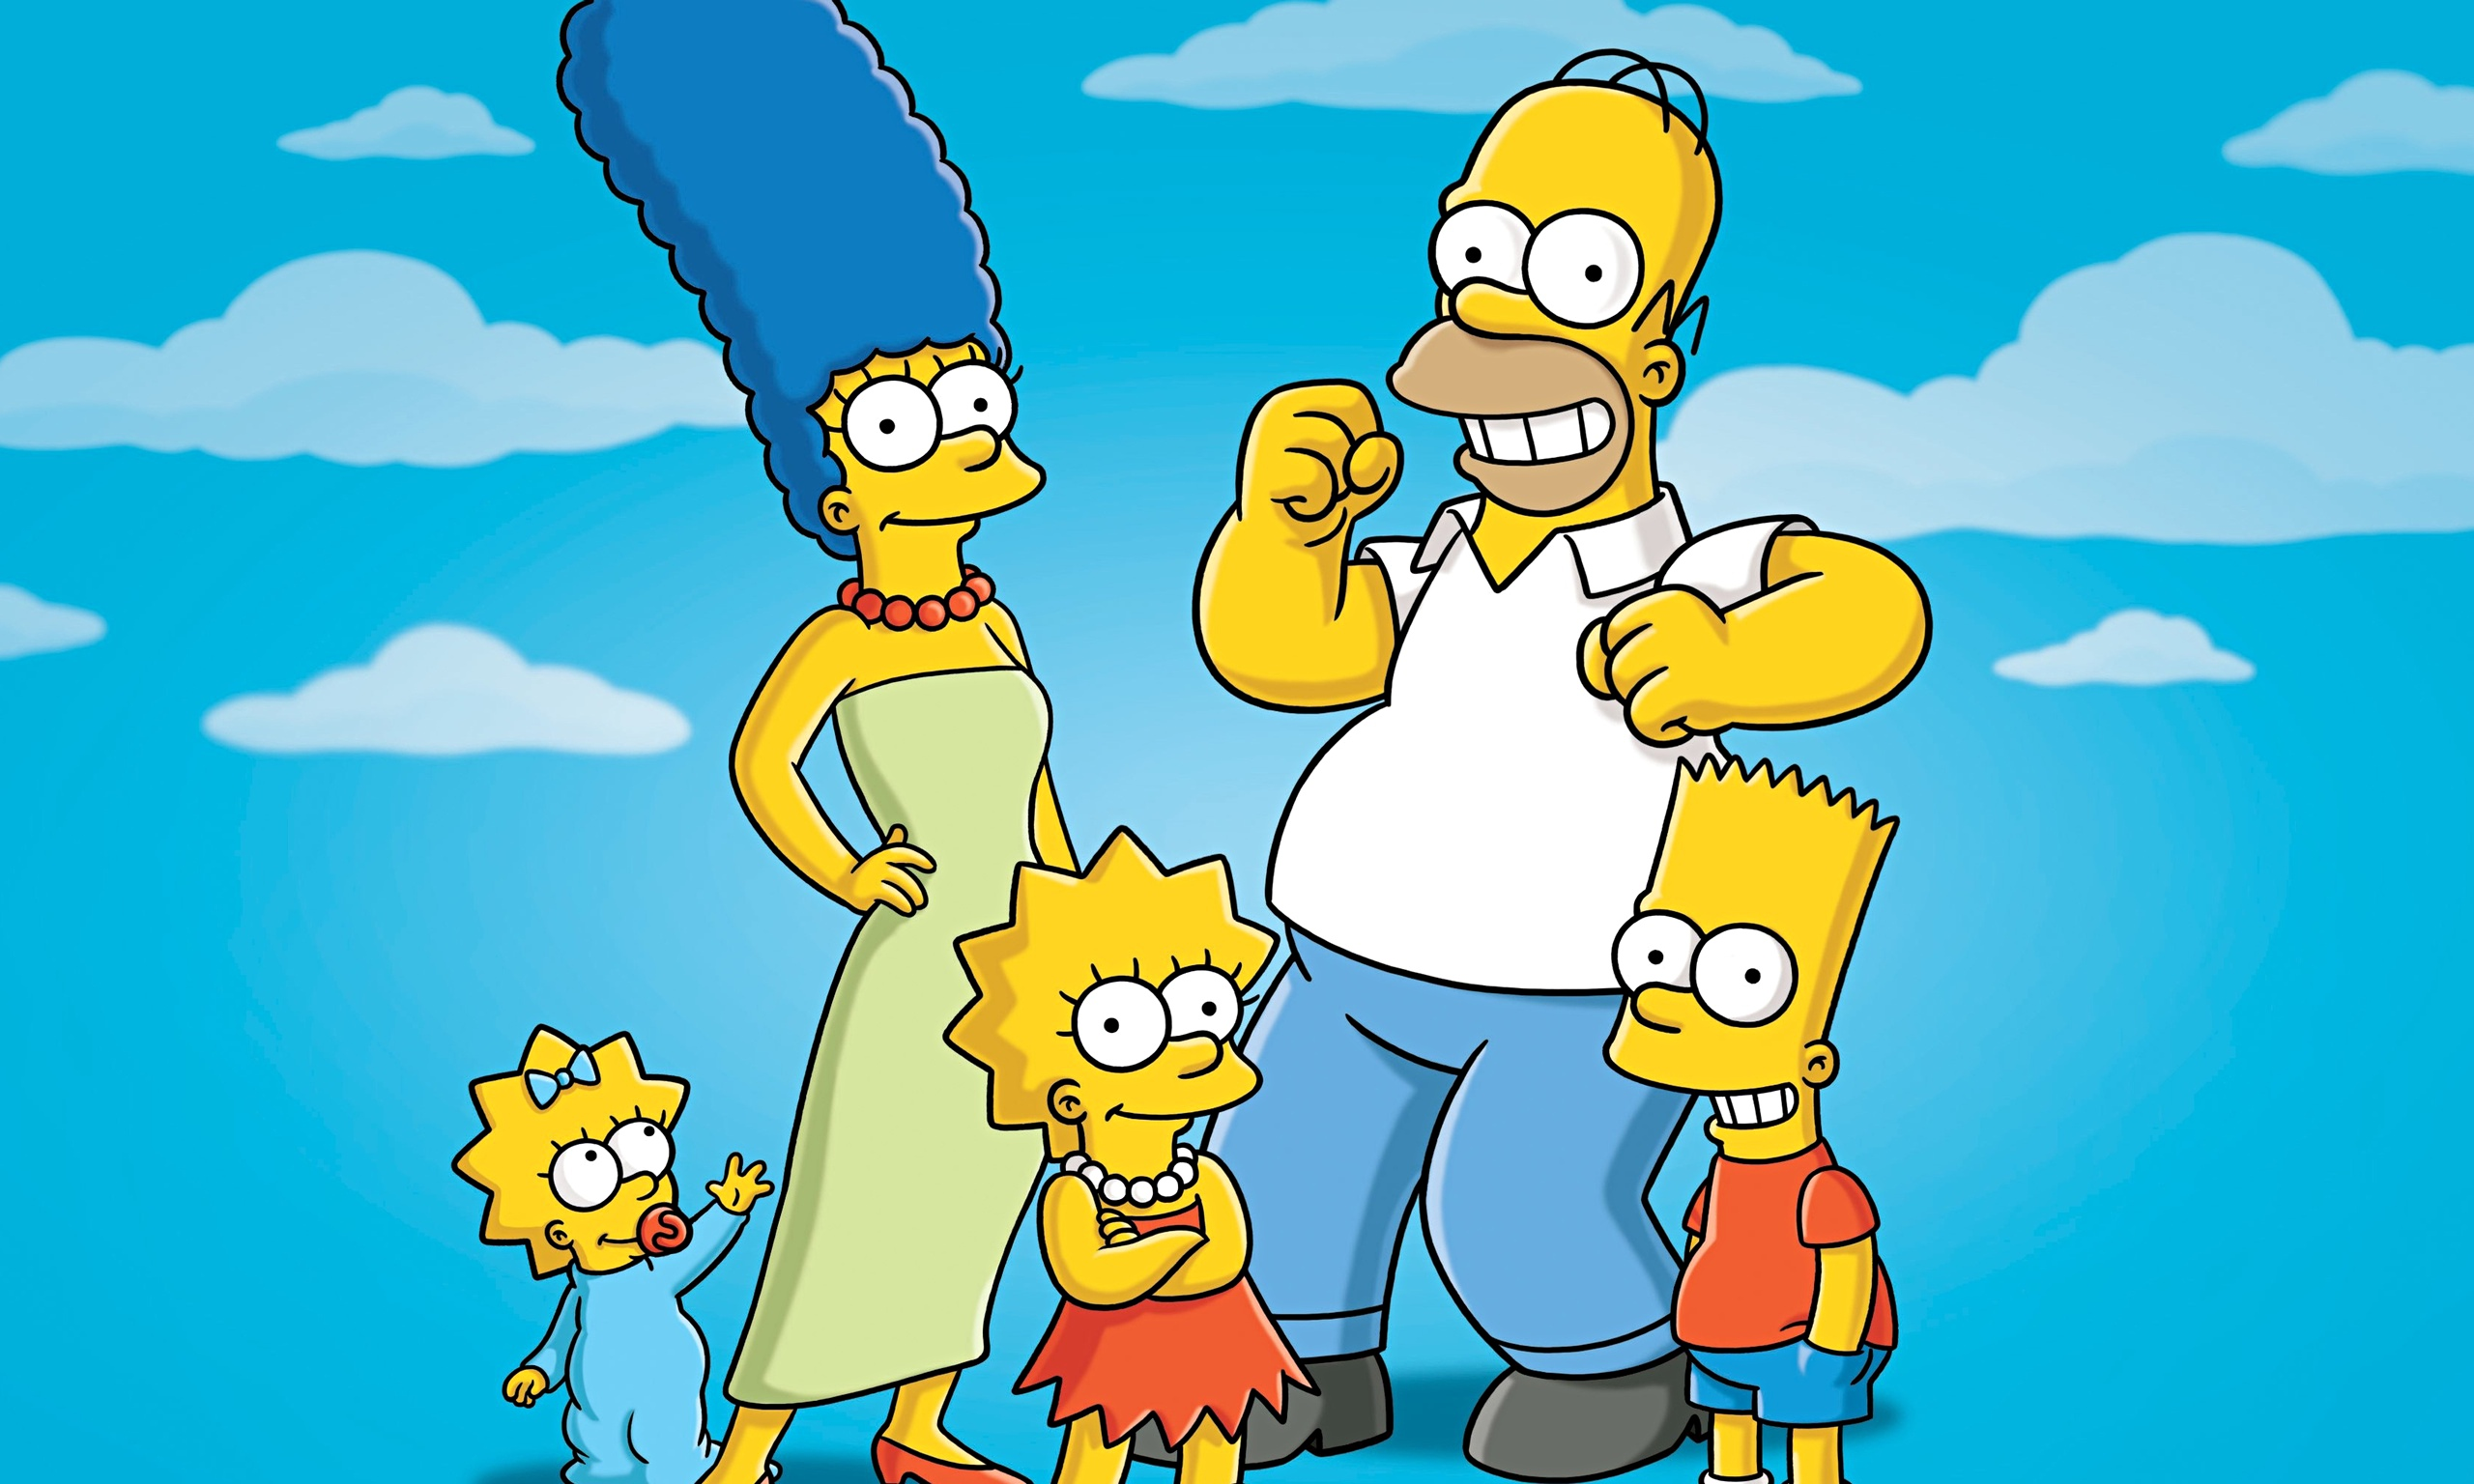 A New Simpsons Game Could Possibly Be Shown At E3 2019